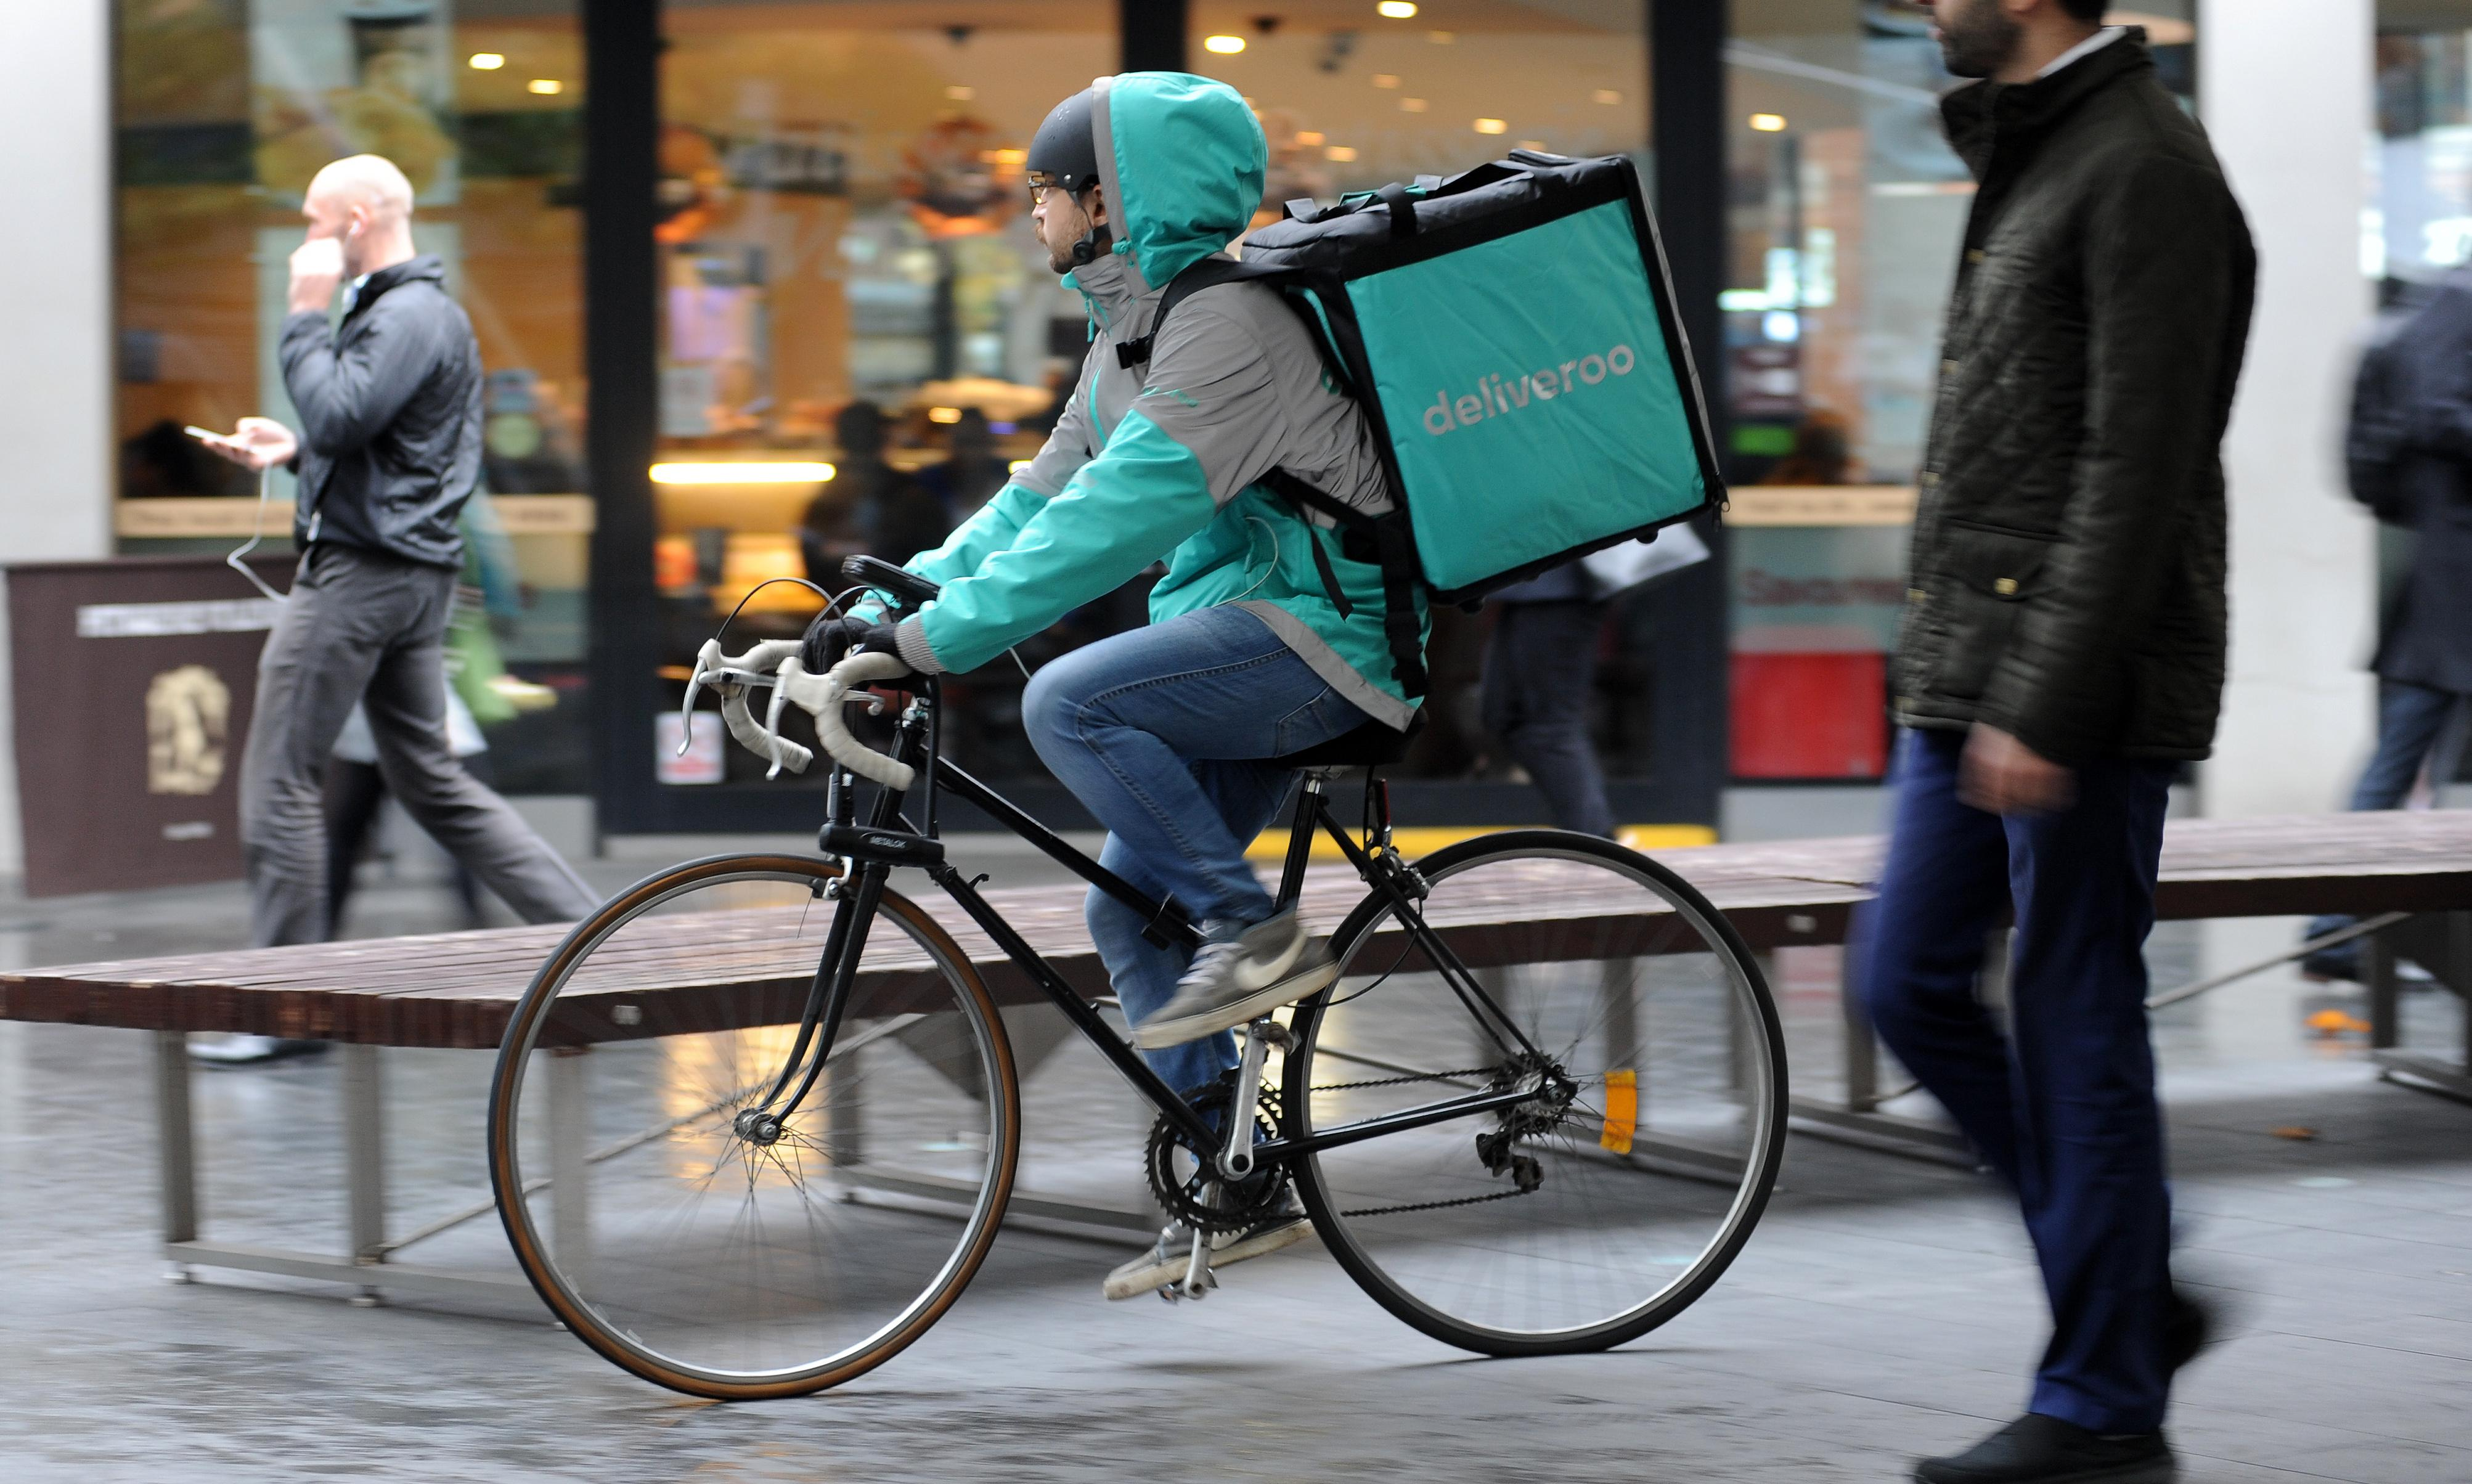 Deliveroo riders lose high court battle to gain union recognition